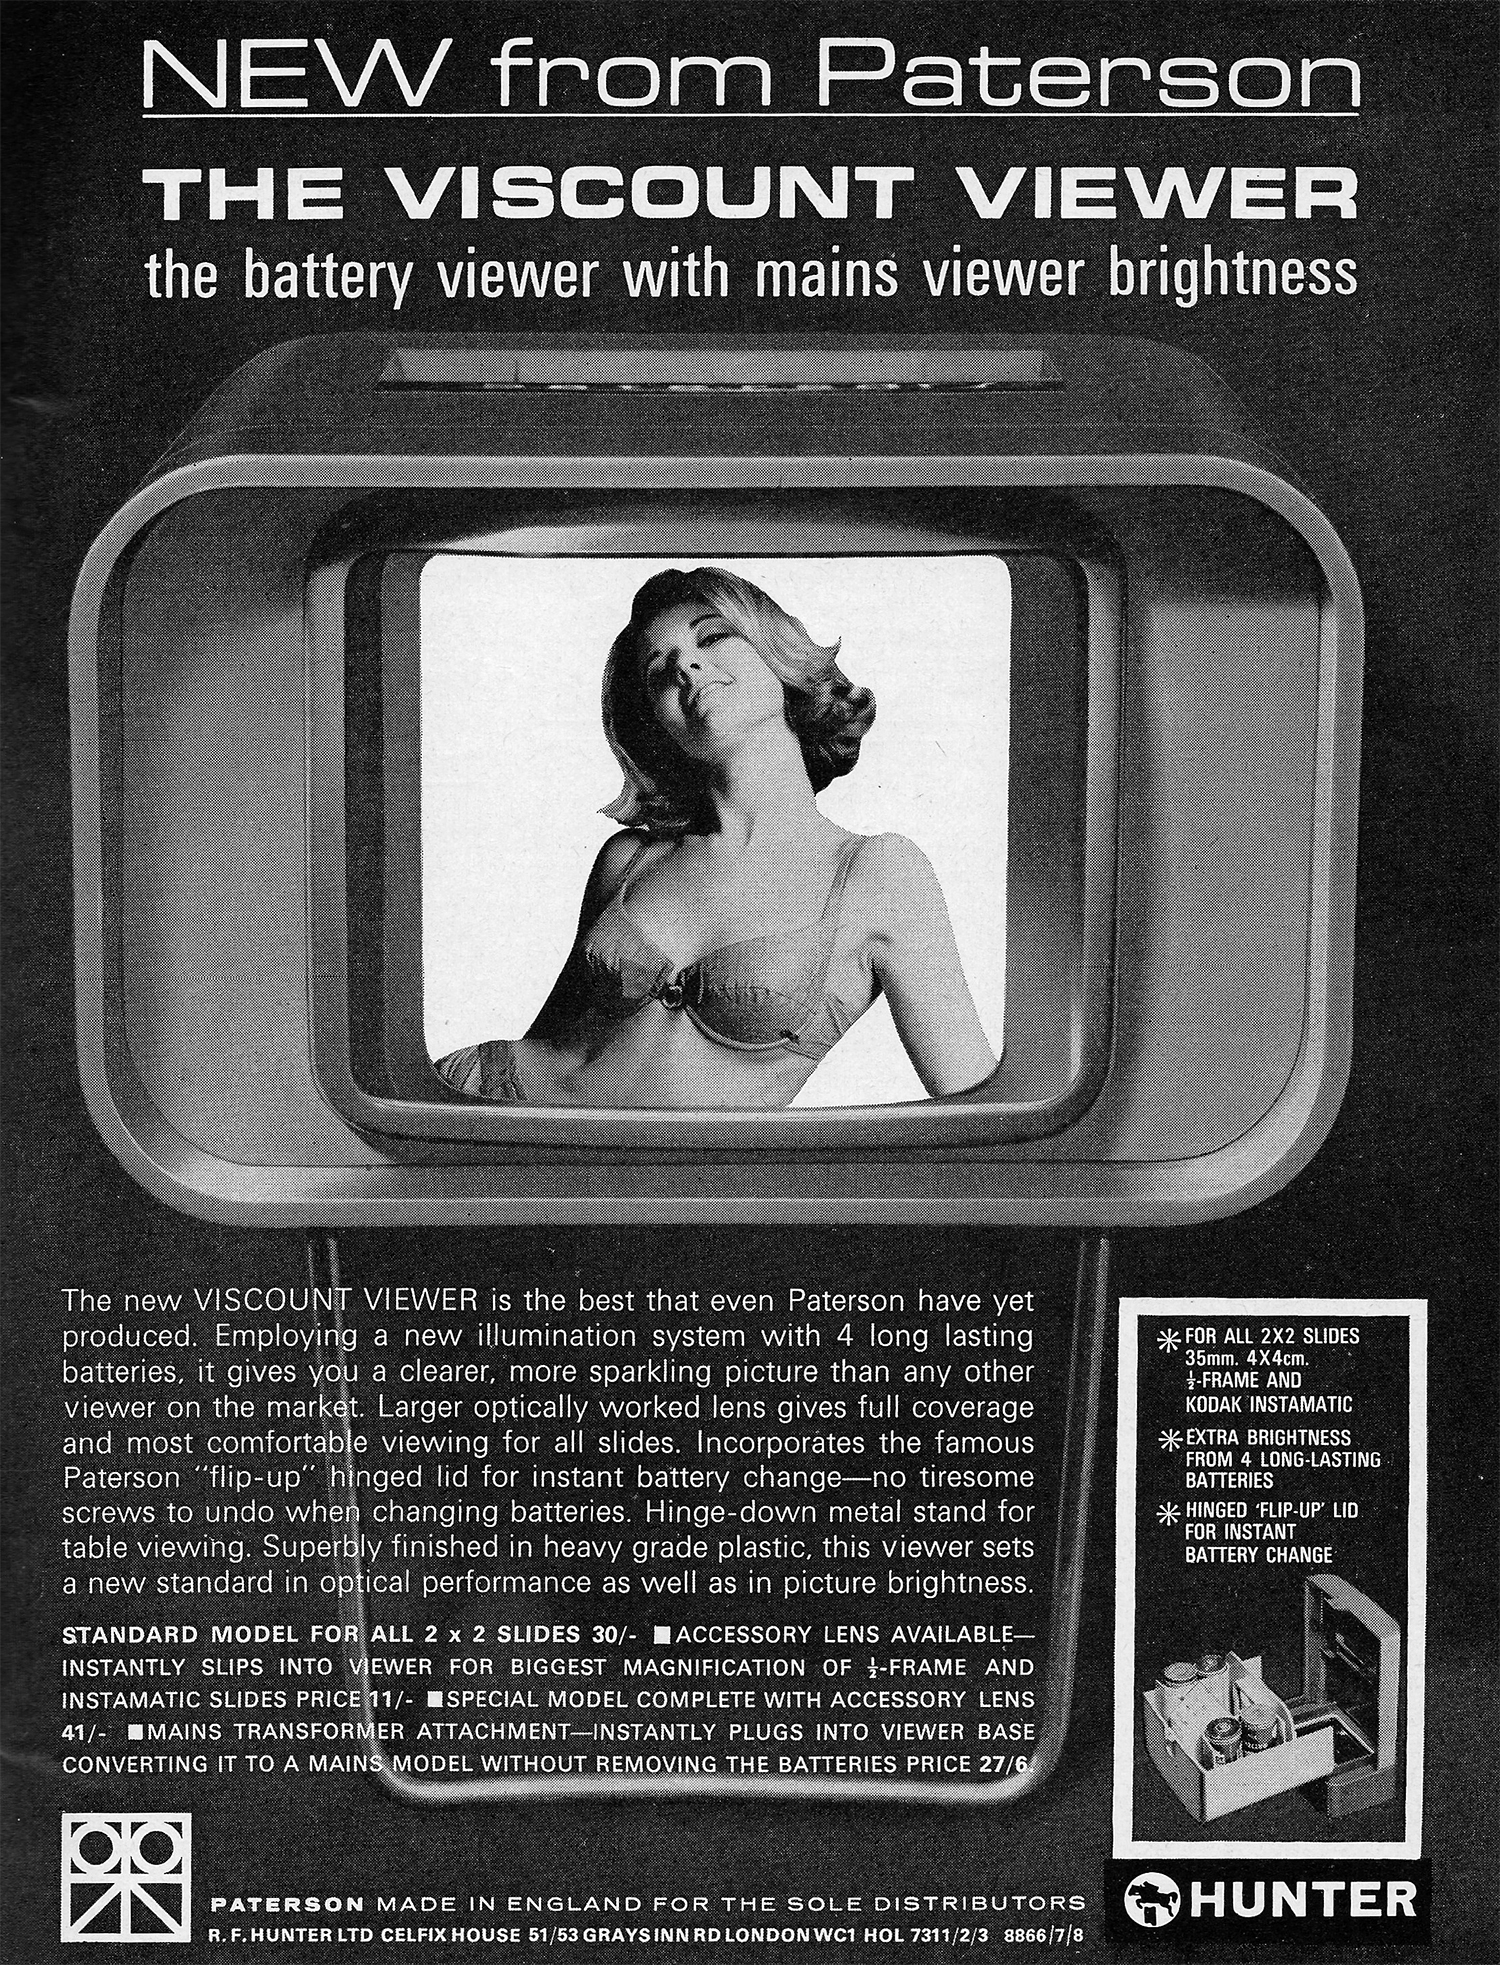 1965 viscount viewer ad